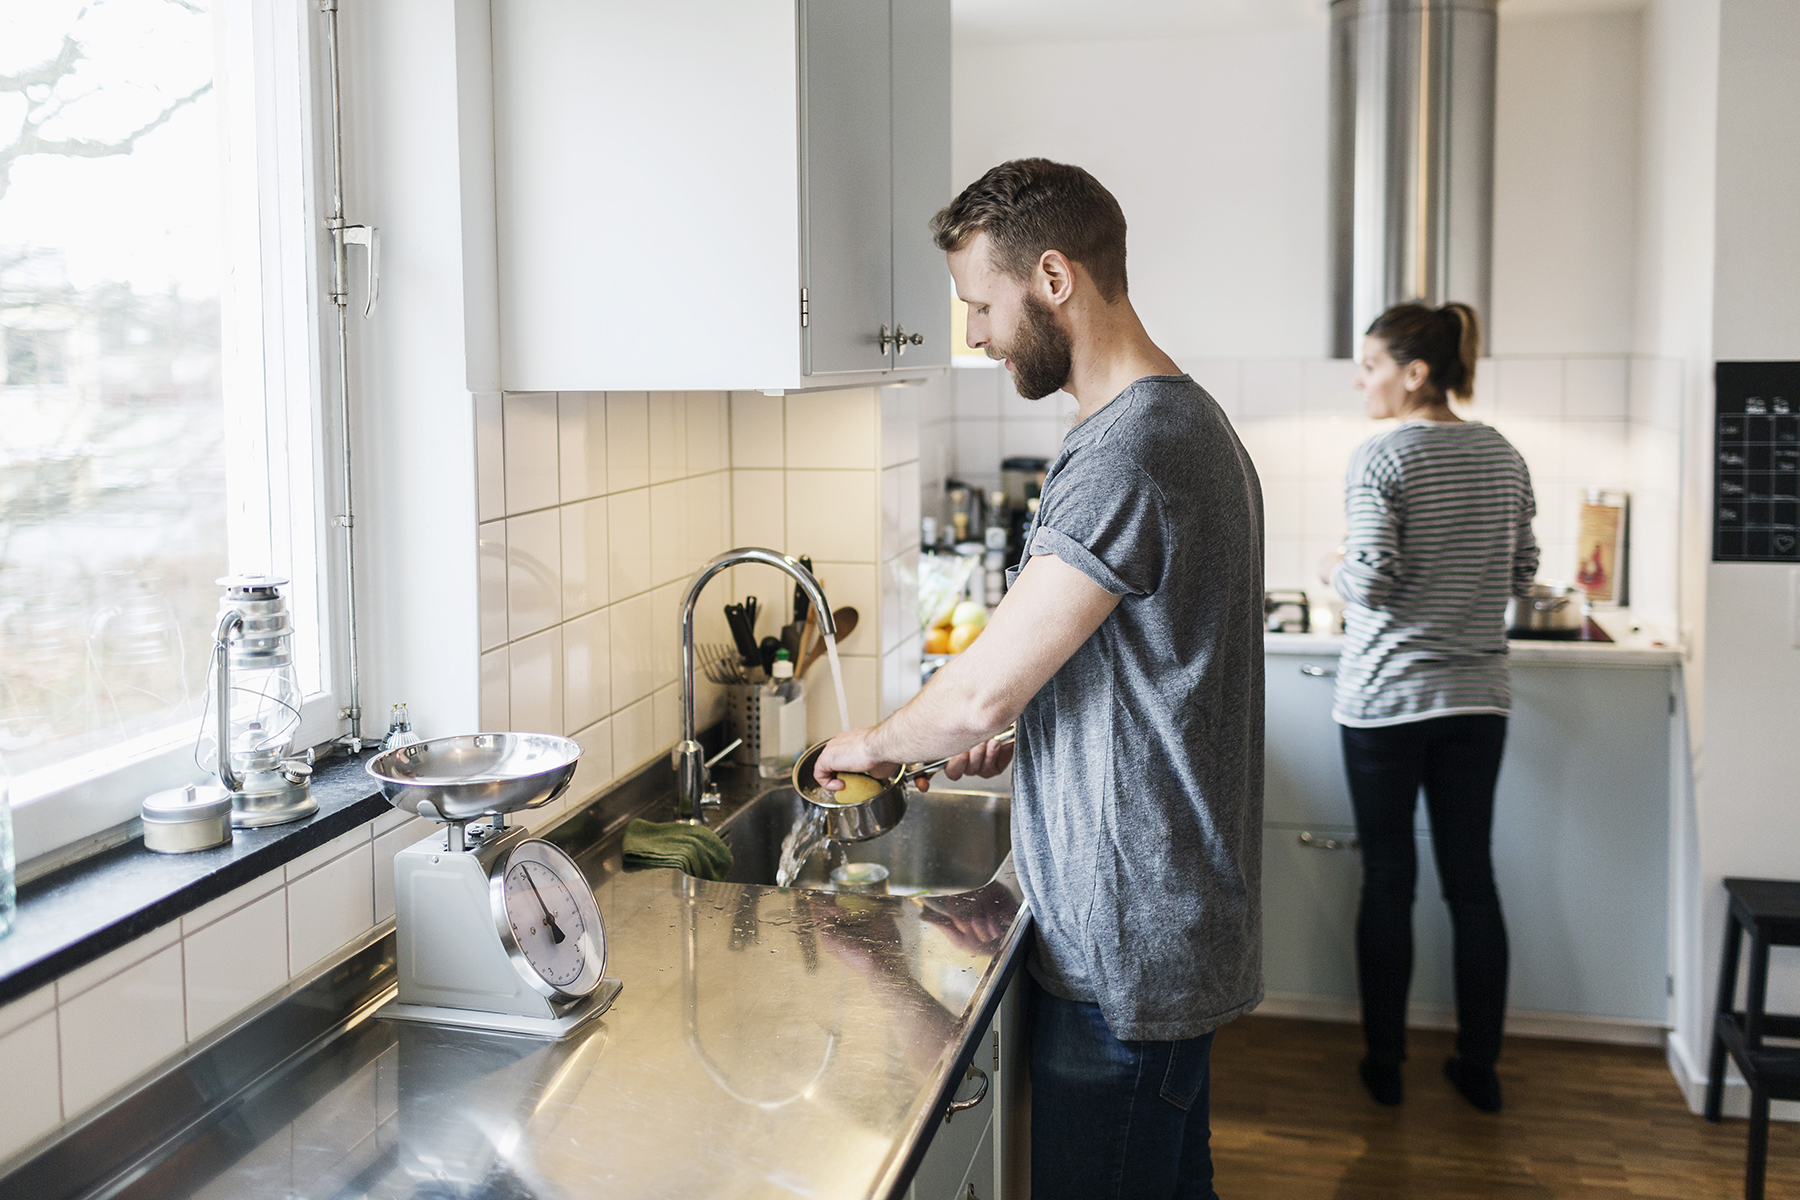 Man and woman in kitchen